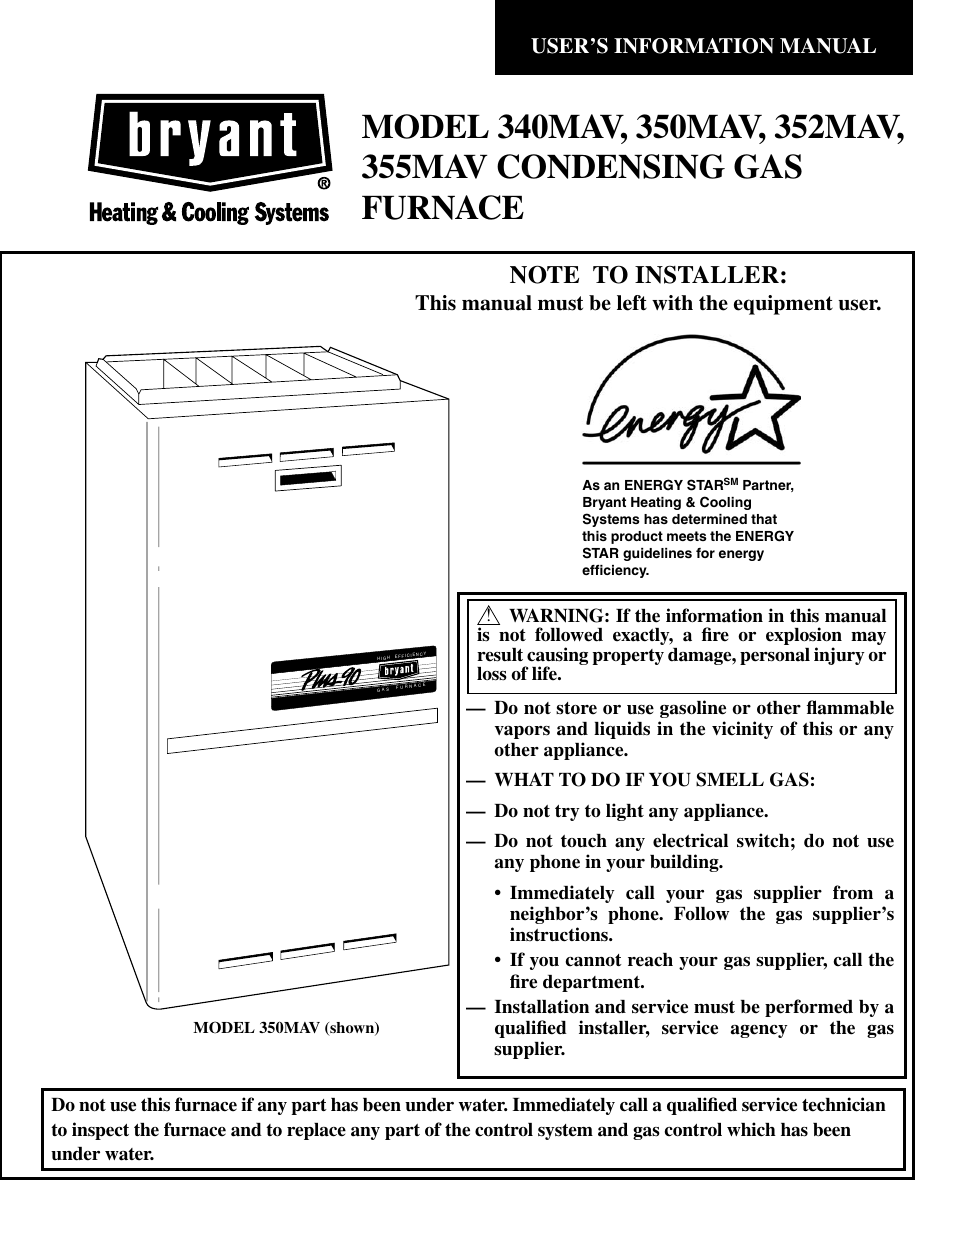 Bryant Gas Boiler Wiring Diagram Schematics Diagrams Condensing Furnace 352mav User Manual 12 Pages Also Rh Manualsdir Com Steam Blowdown Piping Controls